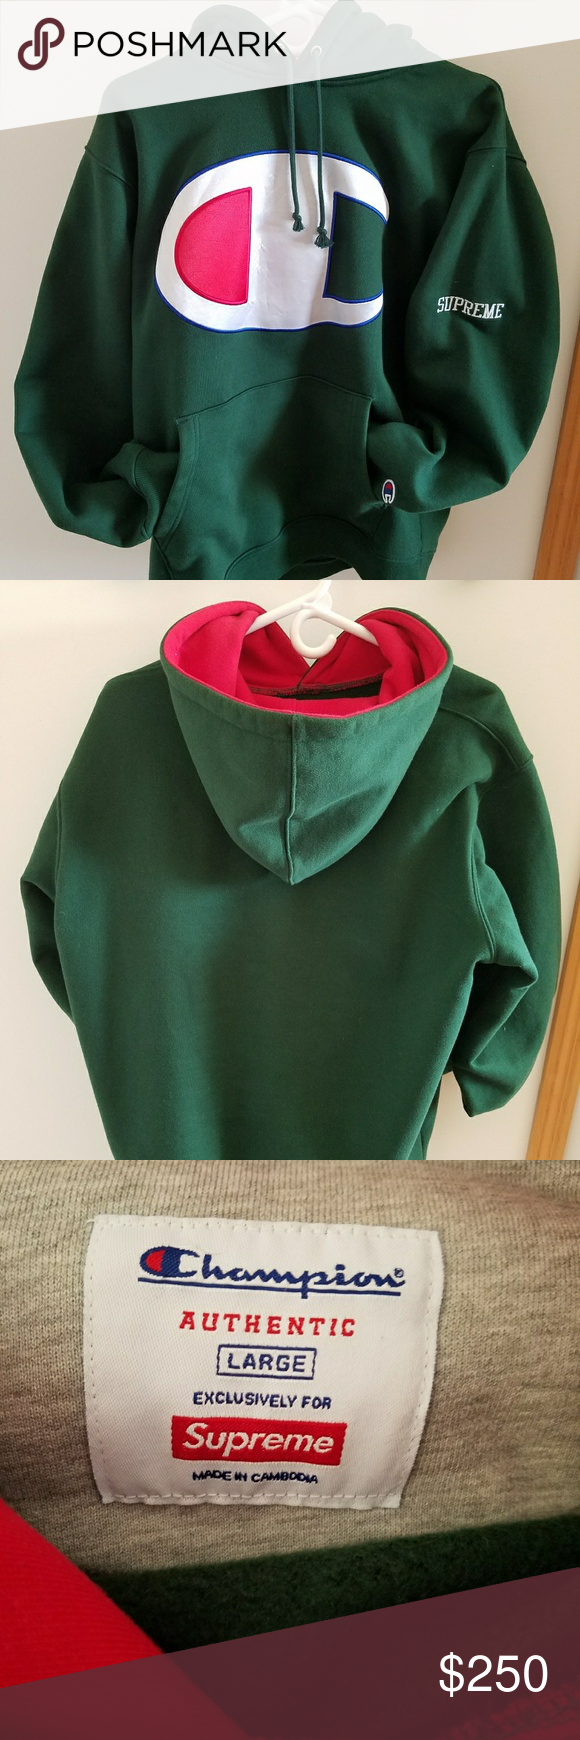 Supreme Champion Satin Logo Hoodie Forest Green Hoodies Forest Green Clothes Design [ 1740 x 580 Pixel ]